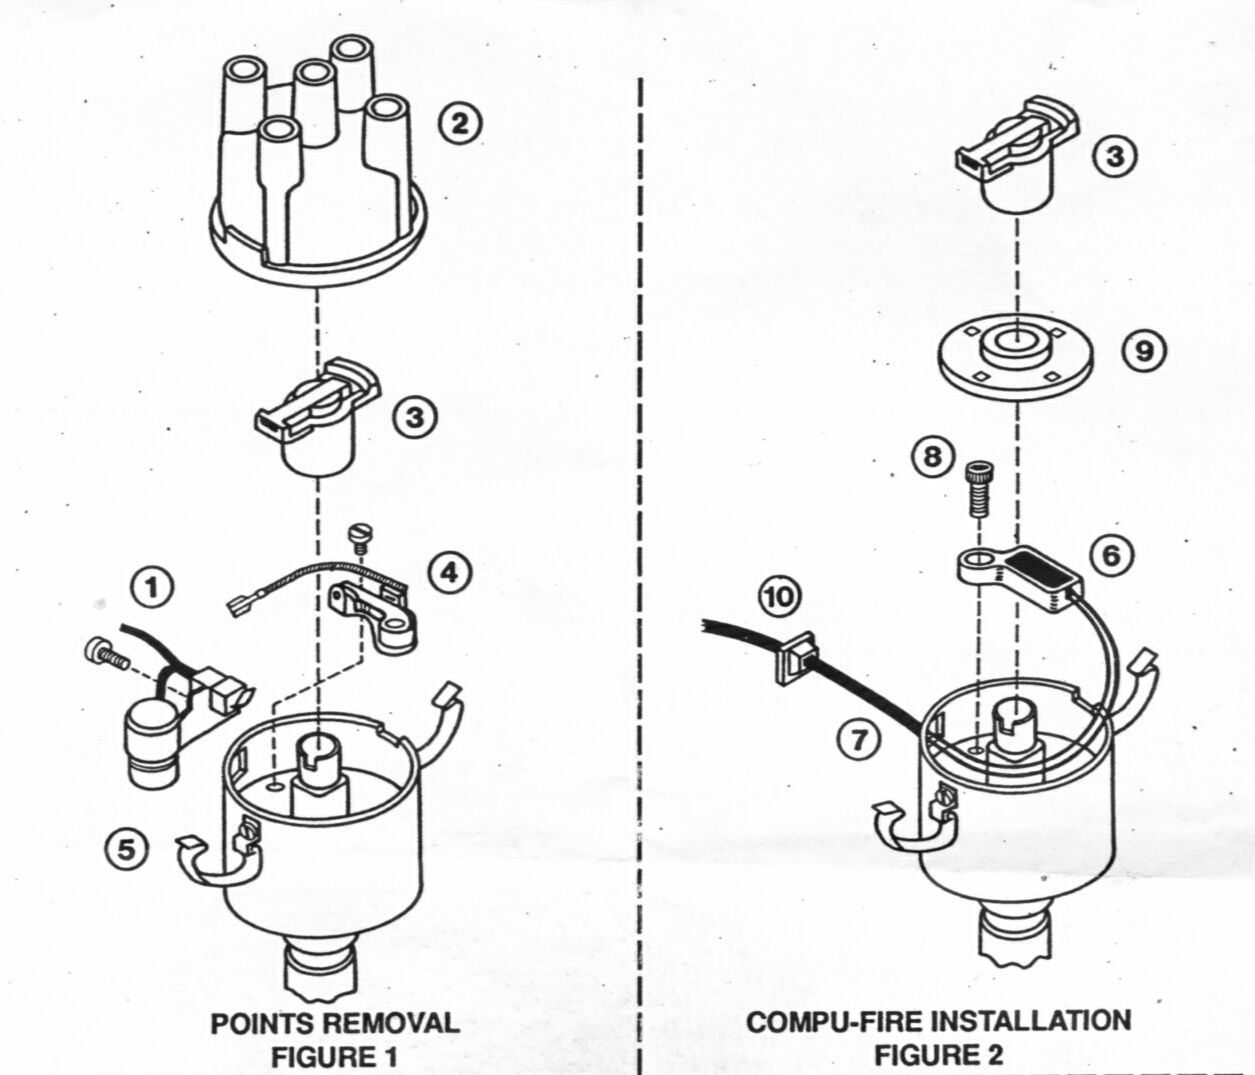 Vw Beetle Electronic Ignition Wiring Diagram Schematics Dune Buggy Alternator Compufire Rh Resource Com 20t Switch